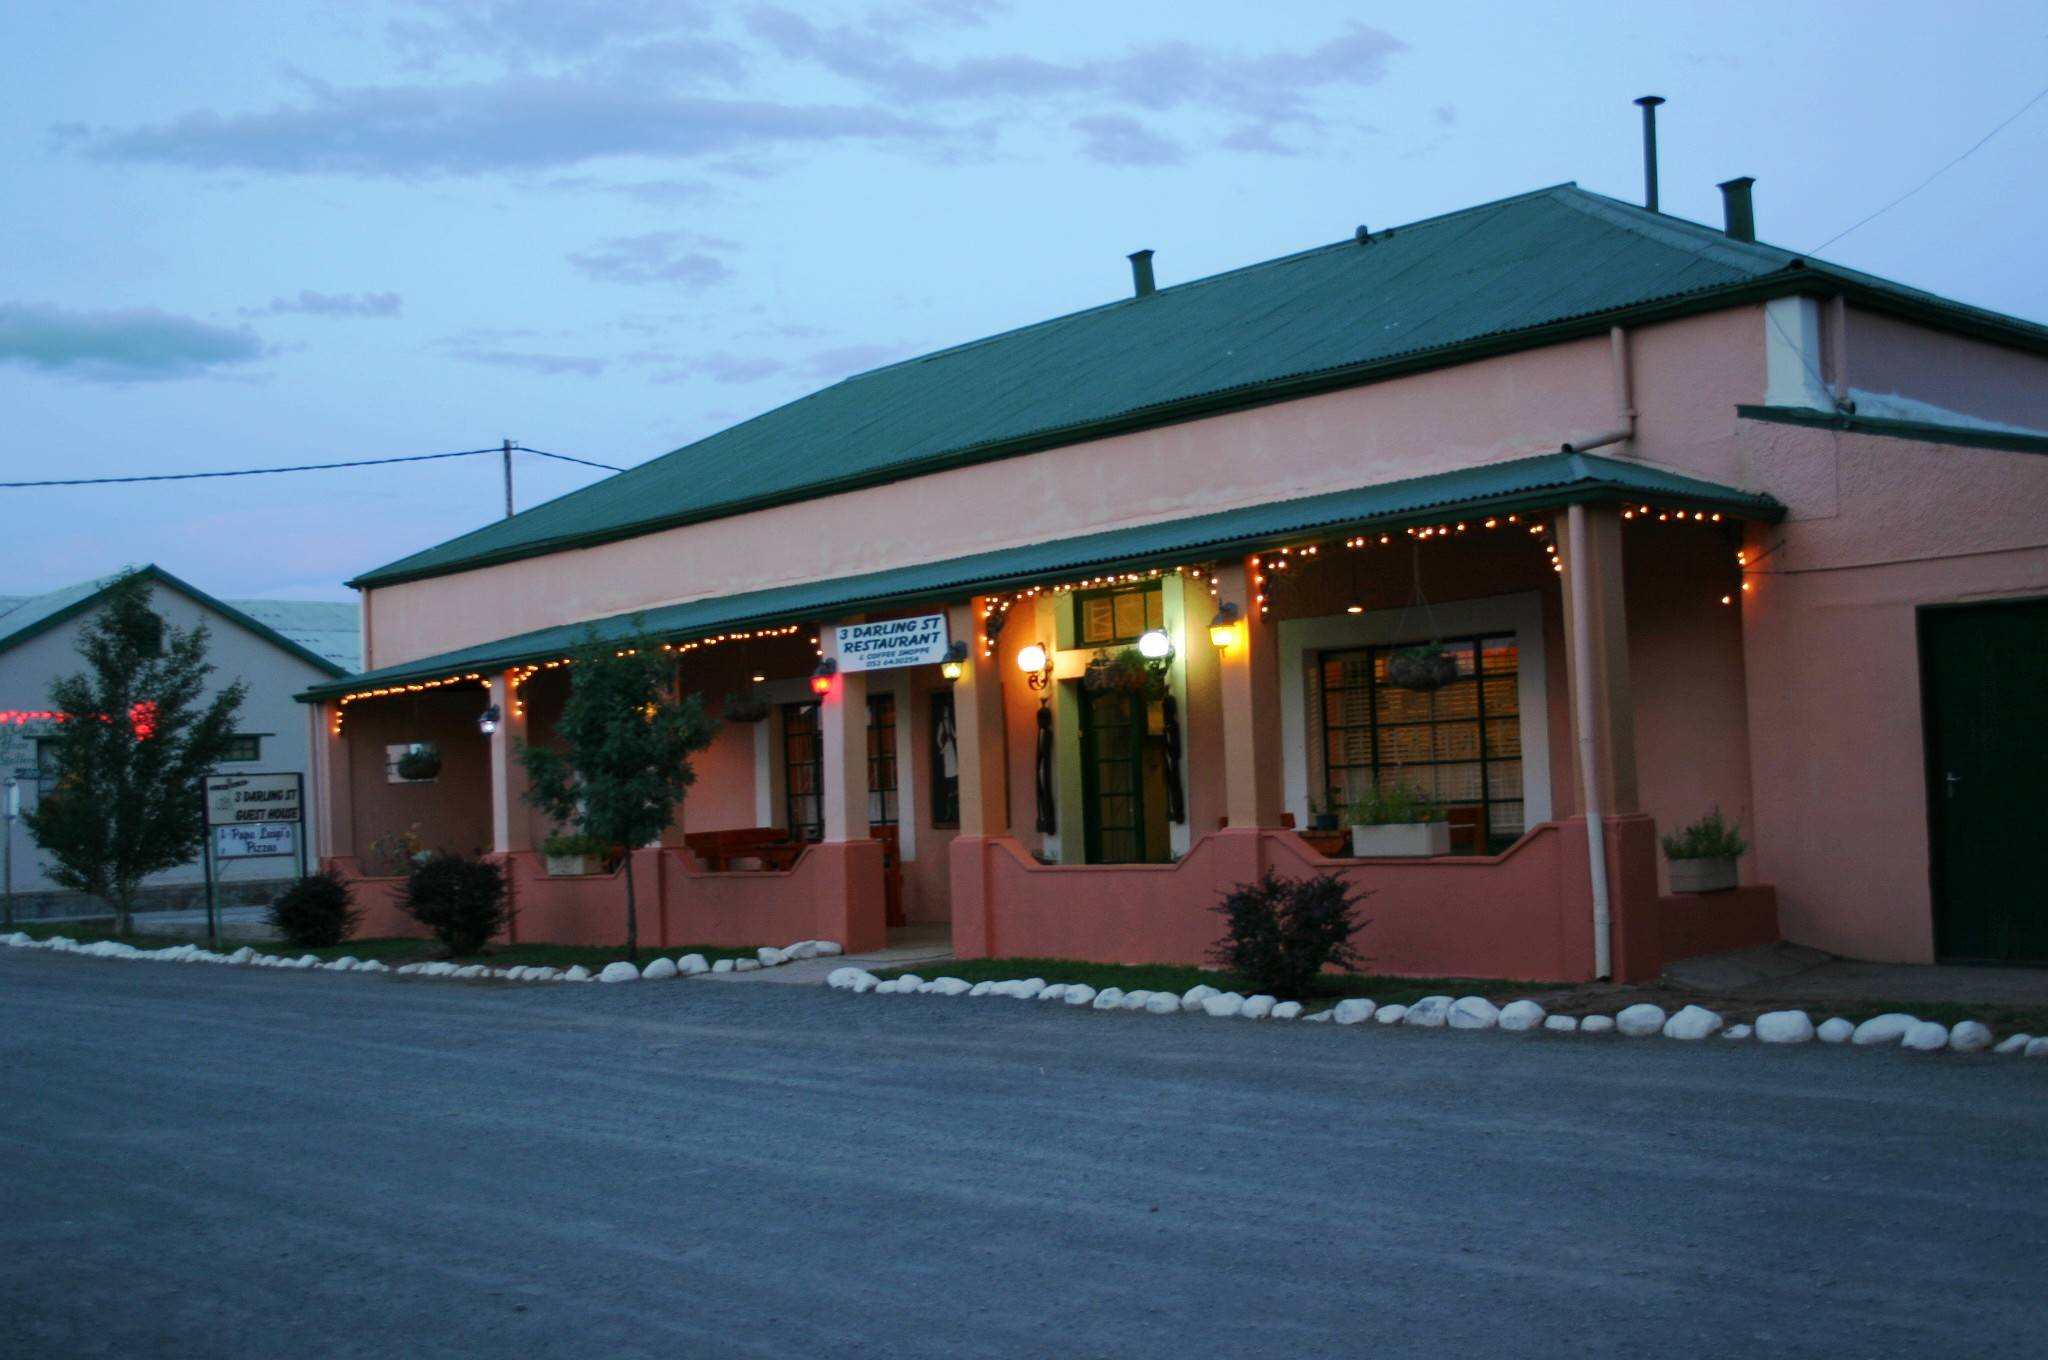 3 Darling Street Guest House, 3 Darling Street, Hanover, Northern Cape, 7005, South Africa